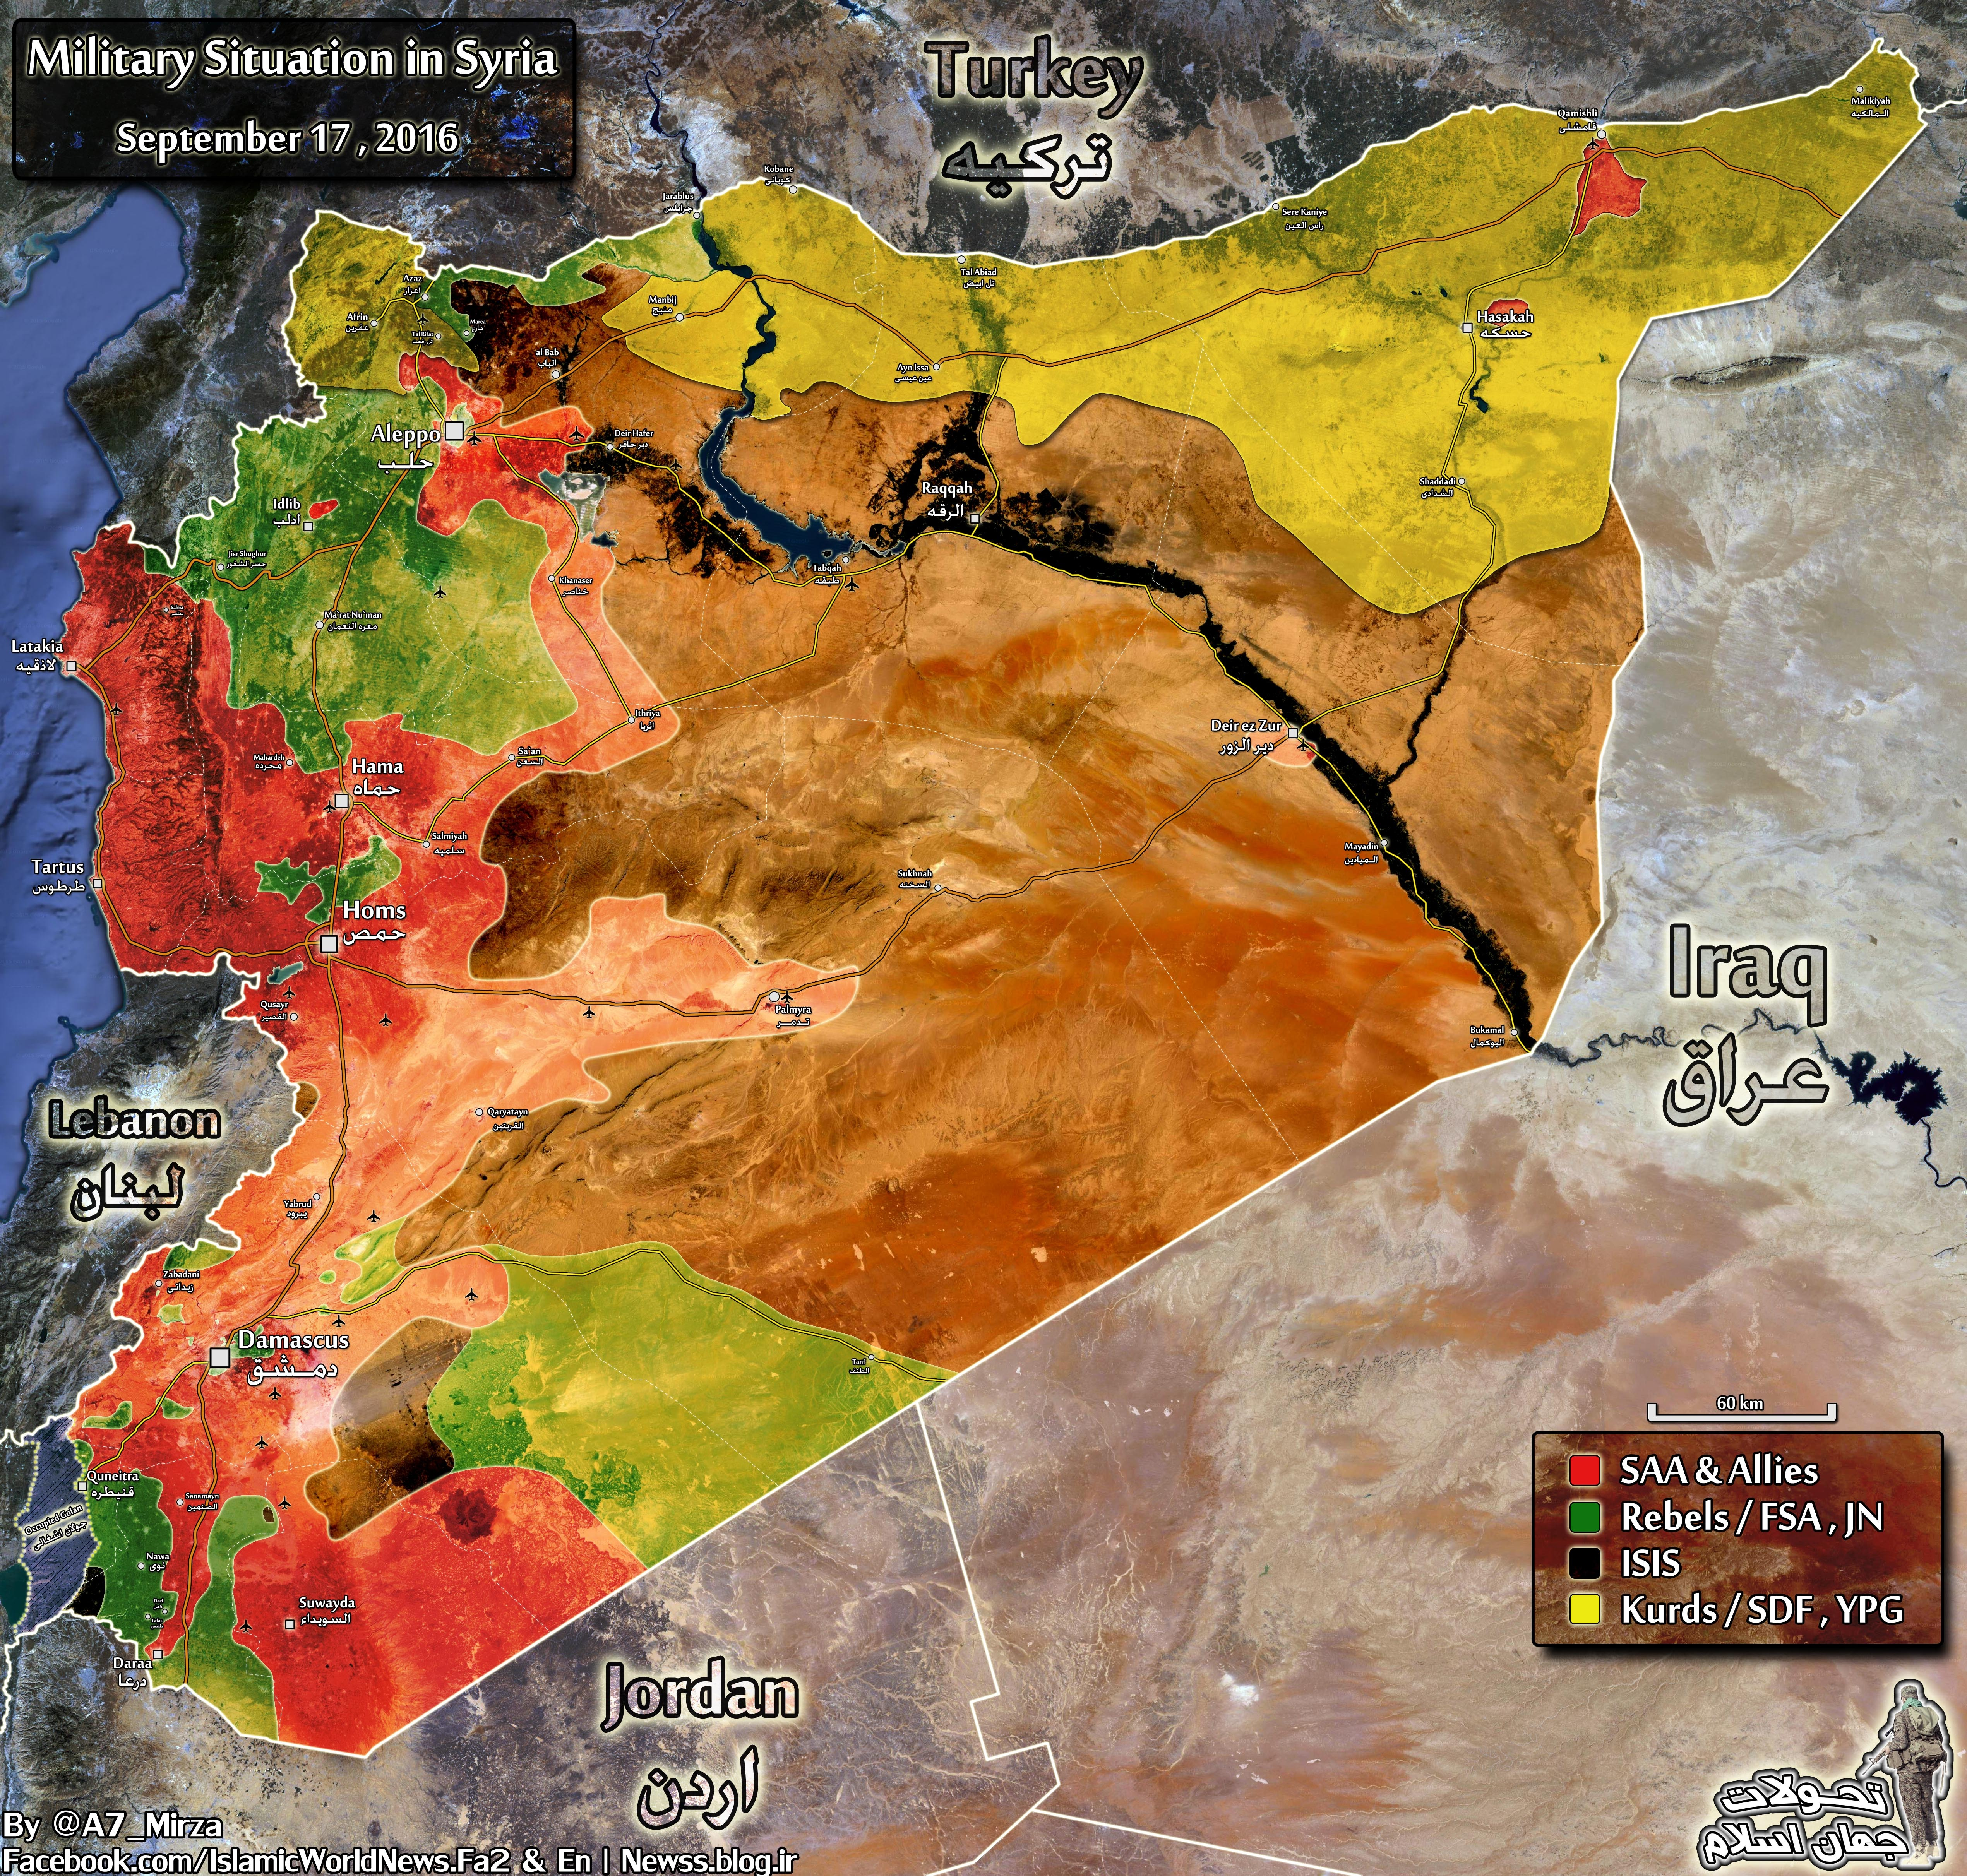 Map: Military Situation in Syria on September 17, 2016